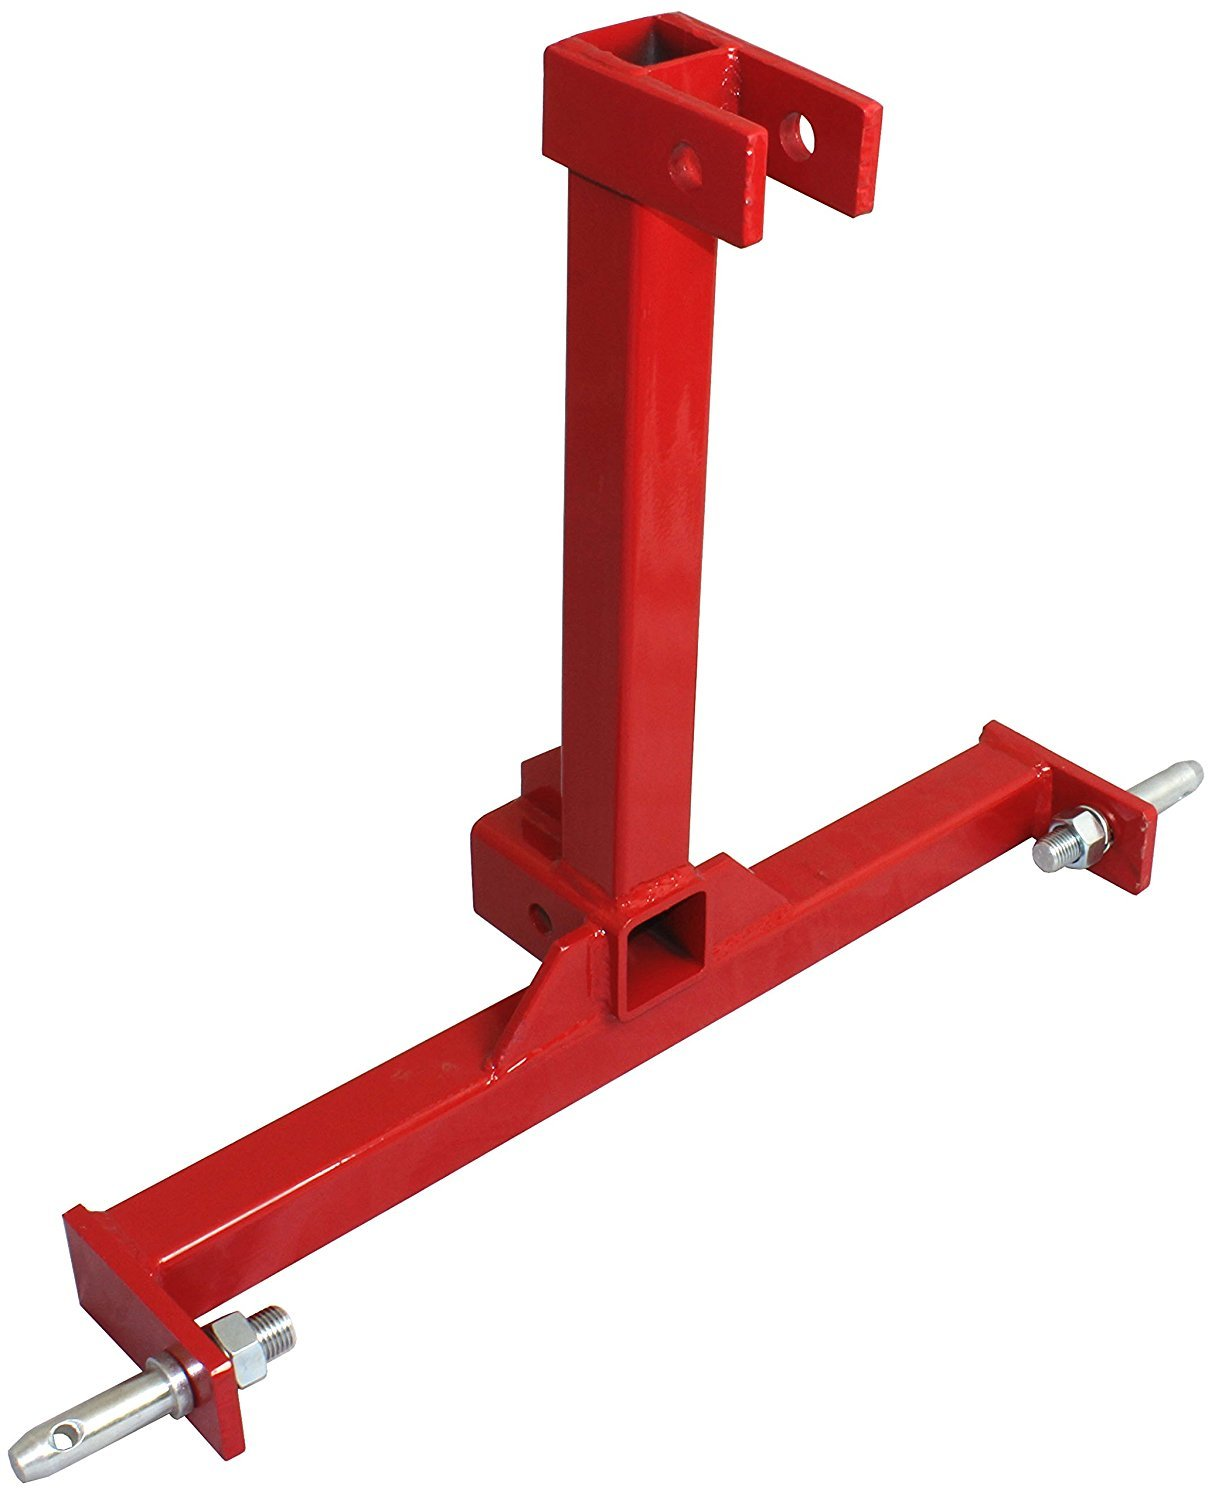 3 Point Trailer Hitch Adapter Category 1 Drawbar Tractor Trailer 2'' Hitch Receiver 3 Point Attachment by 7BLACKSMITHS